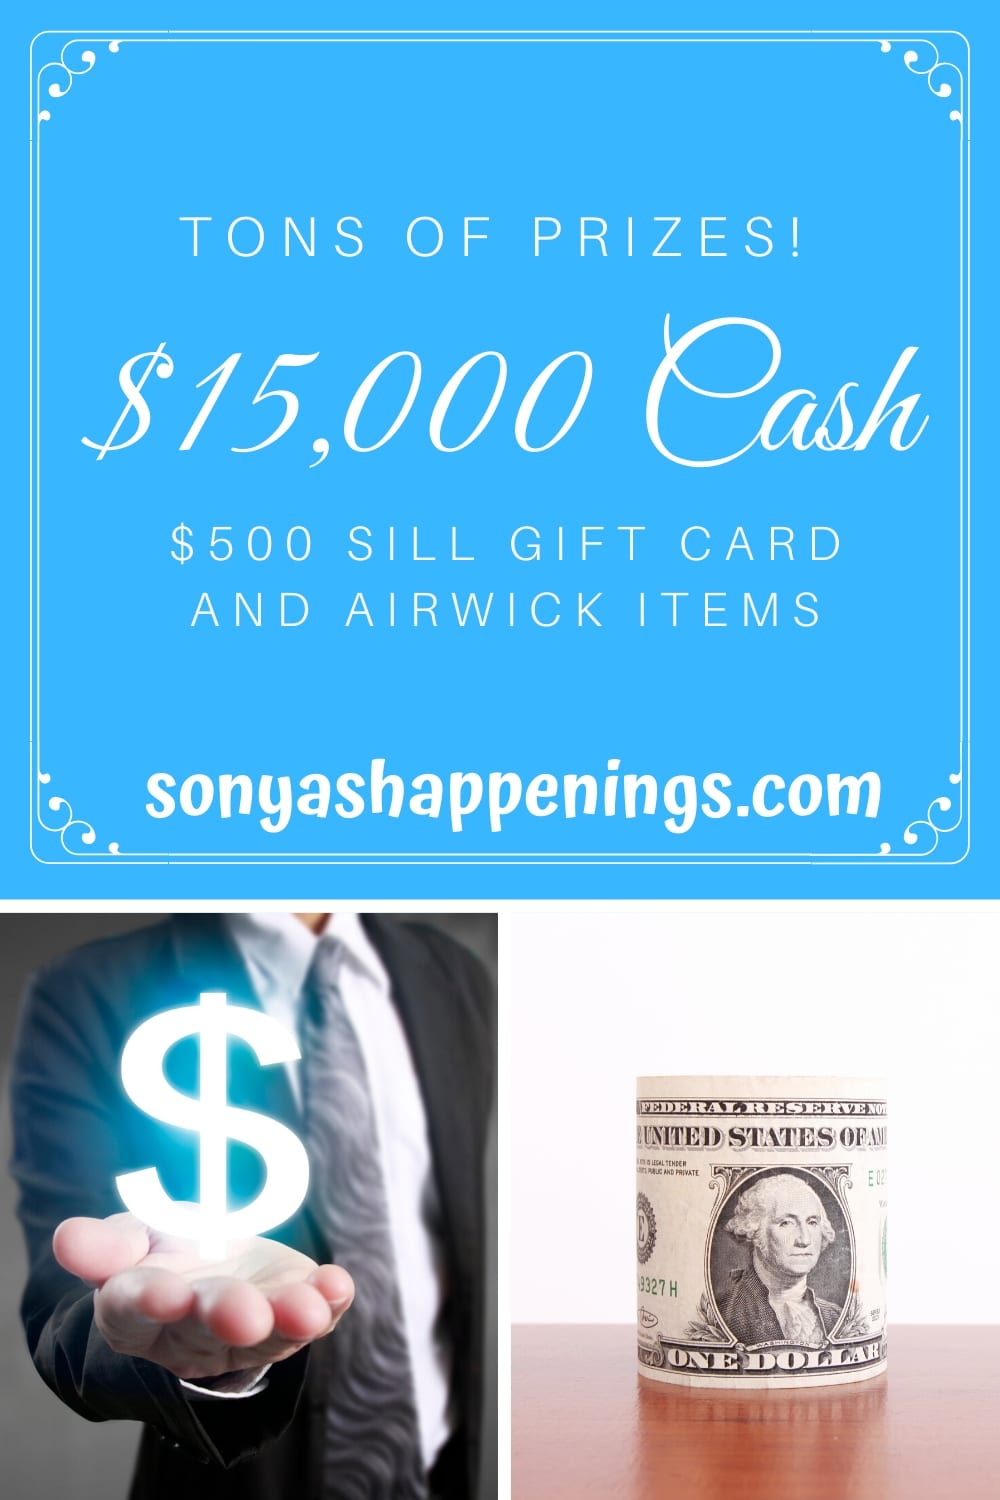 Win $15000 Cash, A GiftCard Or AirWick~ sweeps ends 8-5